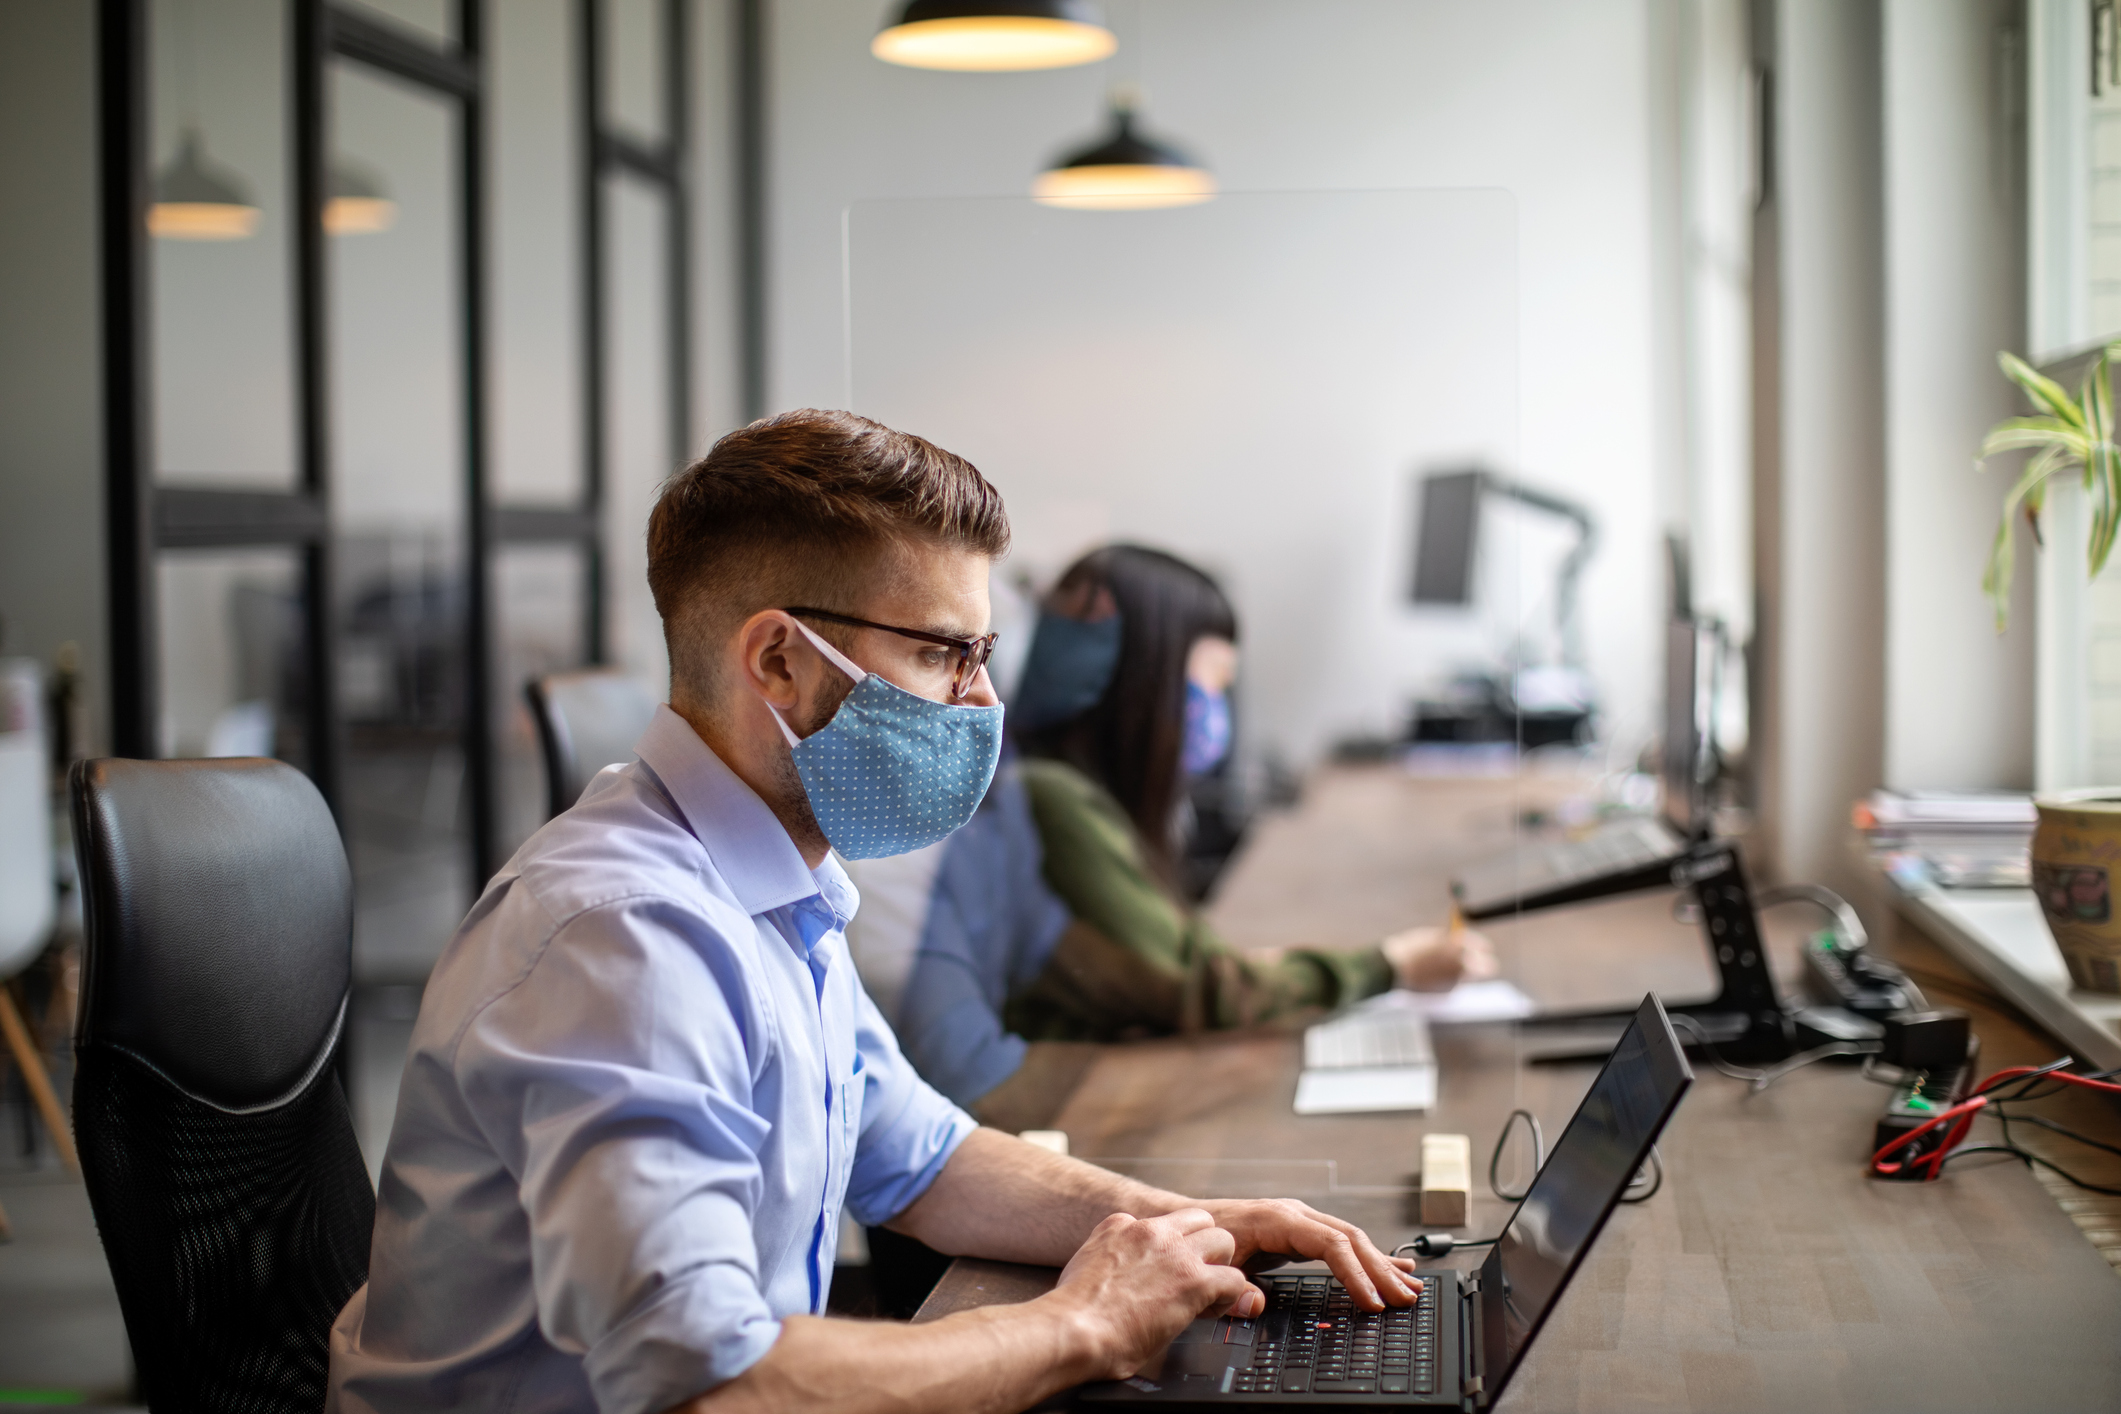 man and woman sitting at desk with masks on in the workplace